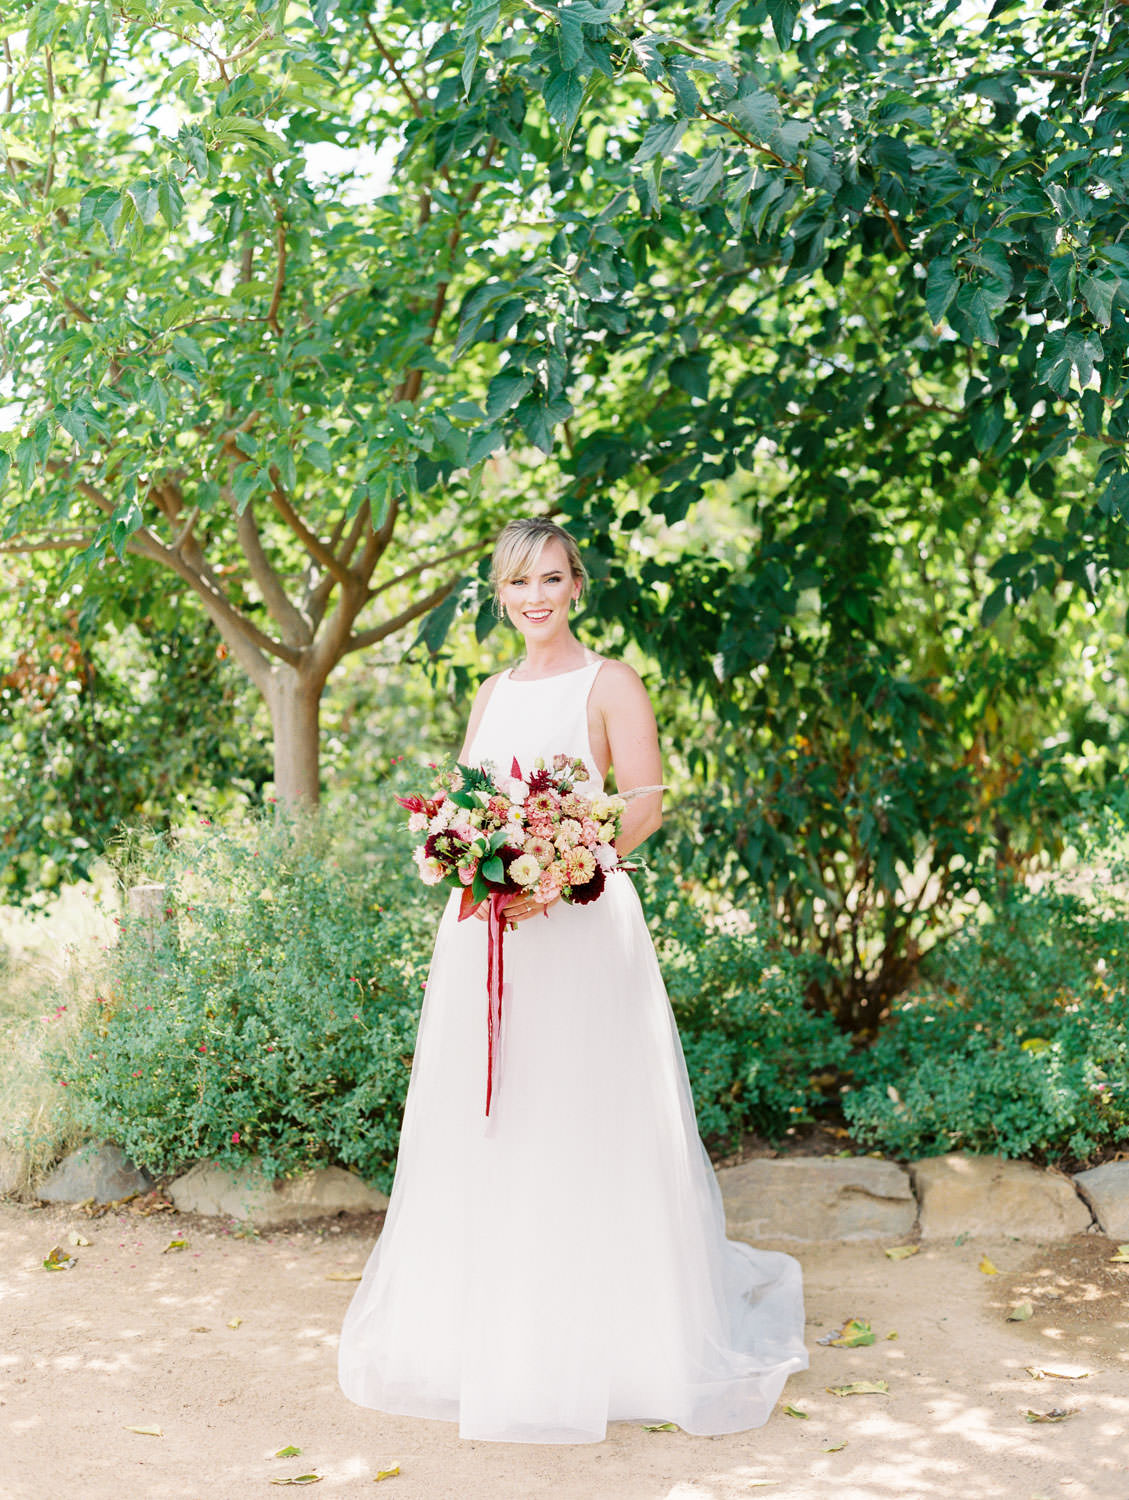 Bride in a classic Mikaella Bridal gown holding her bridal bouquet with ivory, peach, wine, blush flowers and mauve, wine, and blush ribbons. Martha Stewart Weddings by film photographer Cavin Elizabeth Photography